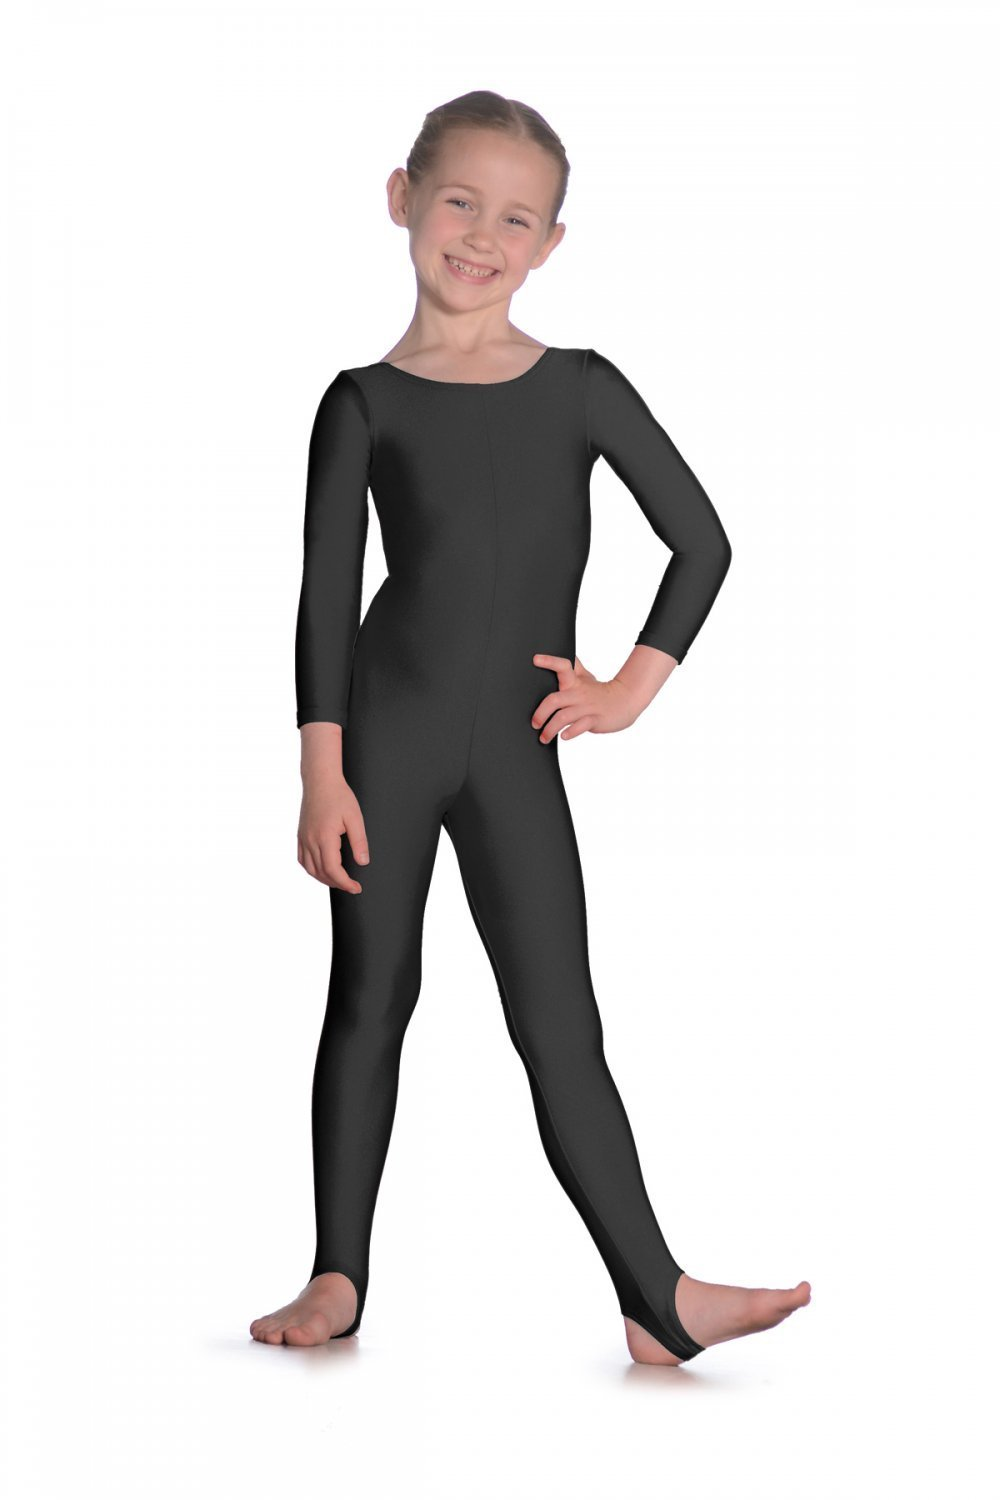 Black spandex dance unitard gymnastics and dancewear - Girls Lycra Long Sleeve Dance Unitard Kids Stirrups Catsuits Spandex Gymnastics Leotards Dancewear Fancy Dress Halloween